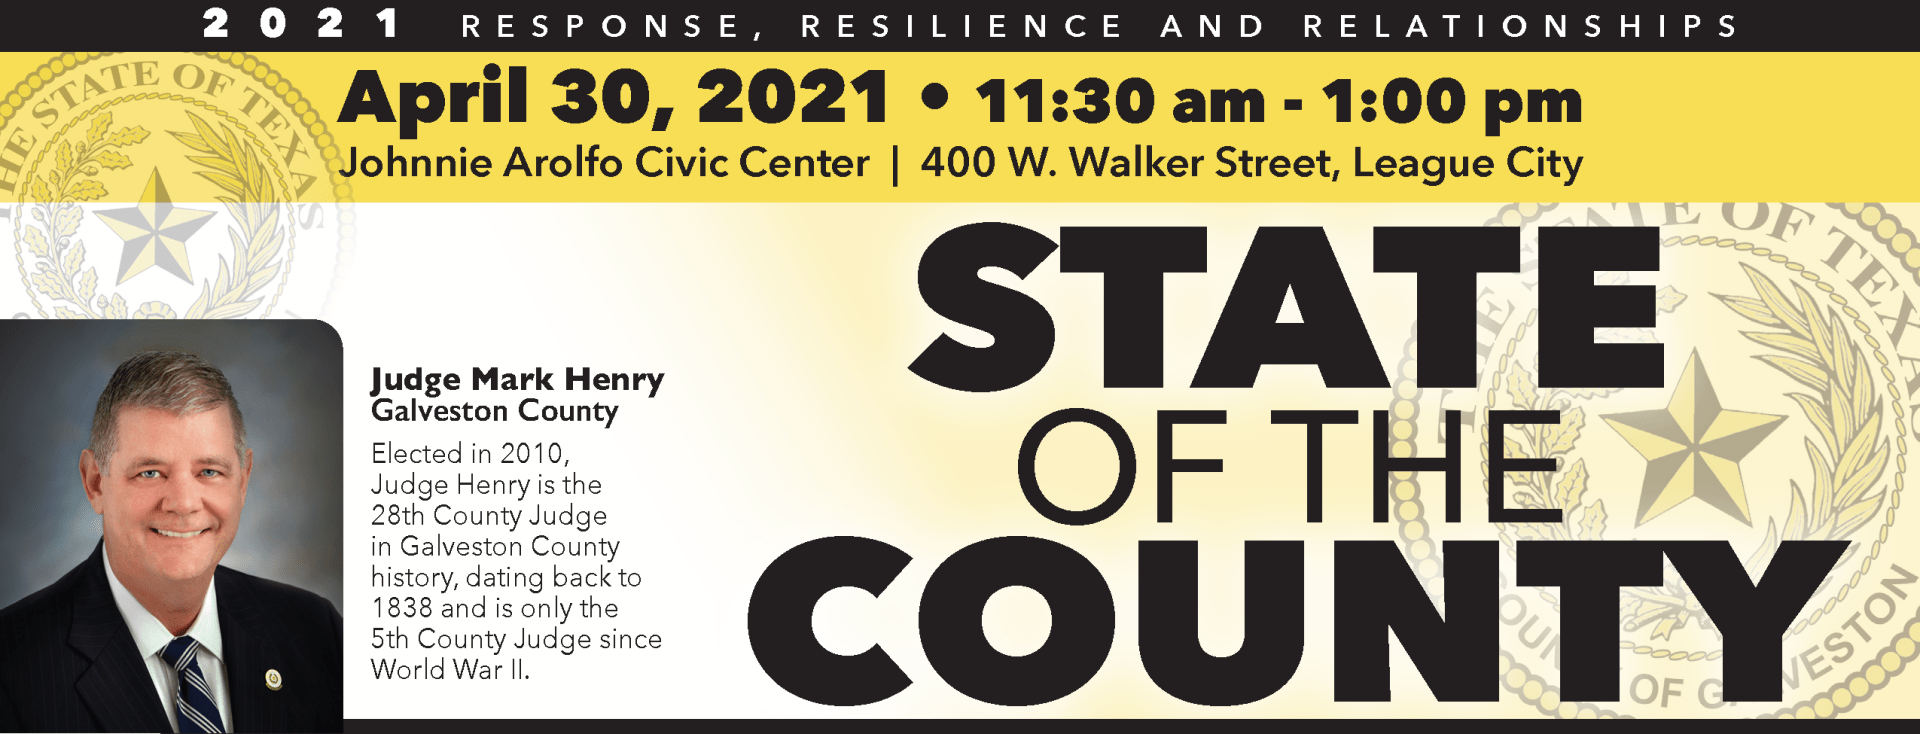 State-of-the-County21-Flyer-w720.png